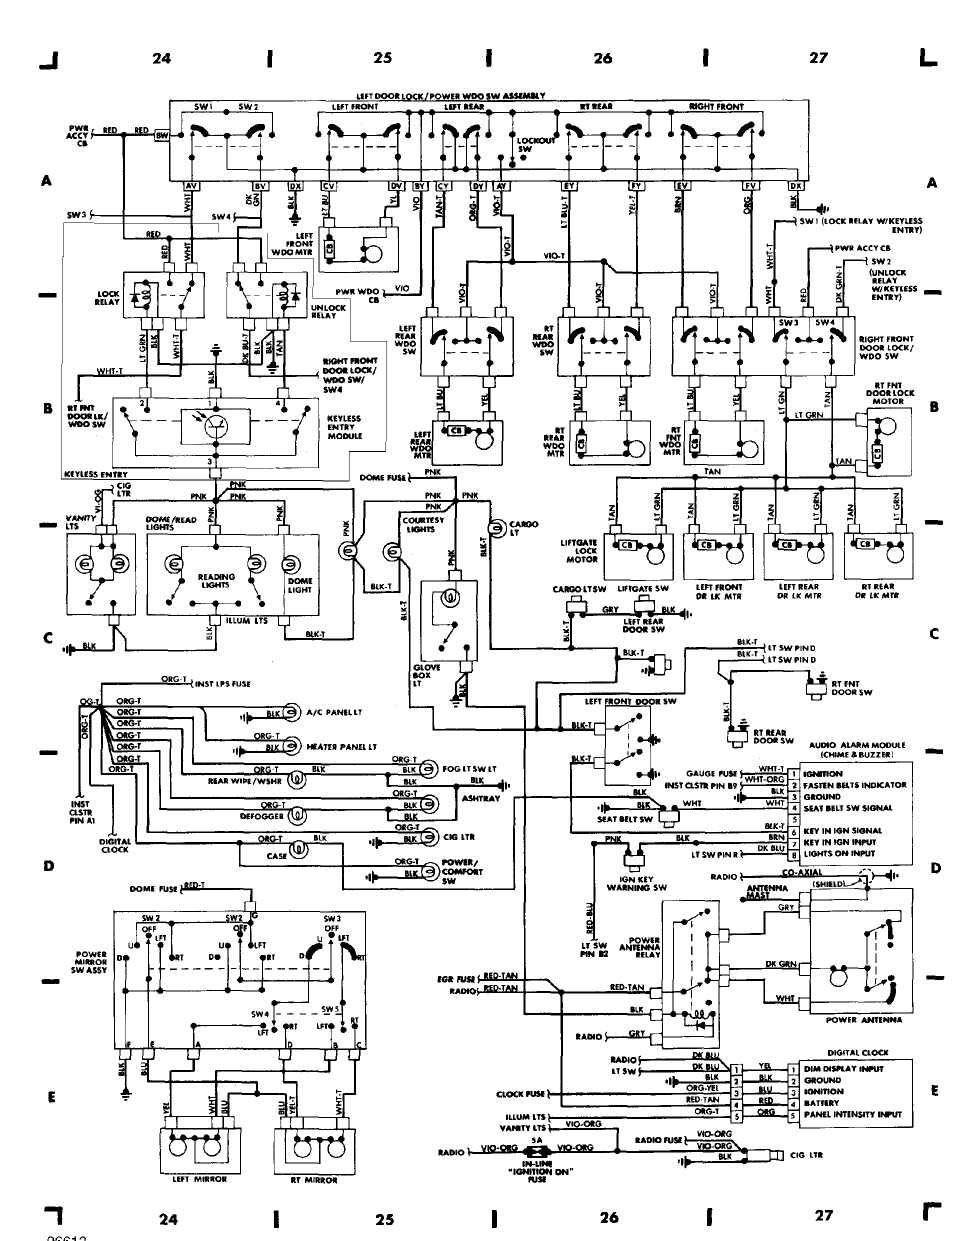 computer fan wiring diagram with Index on Hvac Wiring Diagrams moreover Pcm Wiring Diagram 2004 Sebring together with Extending Your  puter Power Supply further Dayton Solid State Time Delay Relay 6a855 Wiring Diagrams together with Powertrain Control Module Location 2004 Dodge Neon.